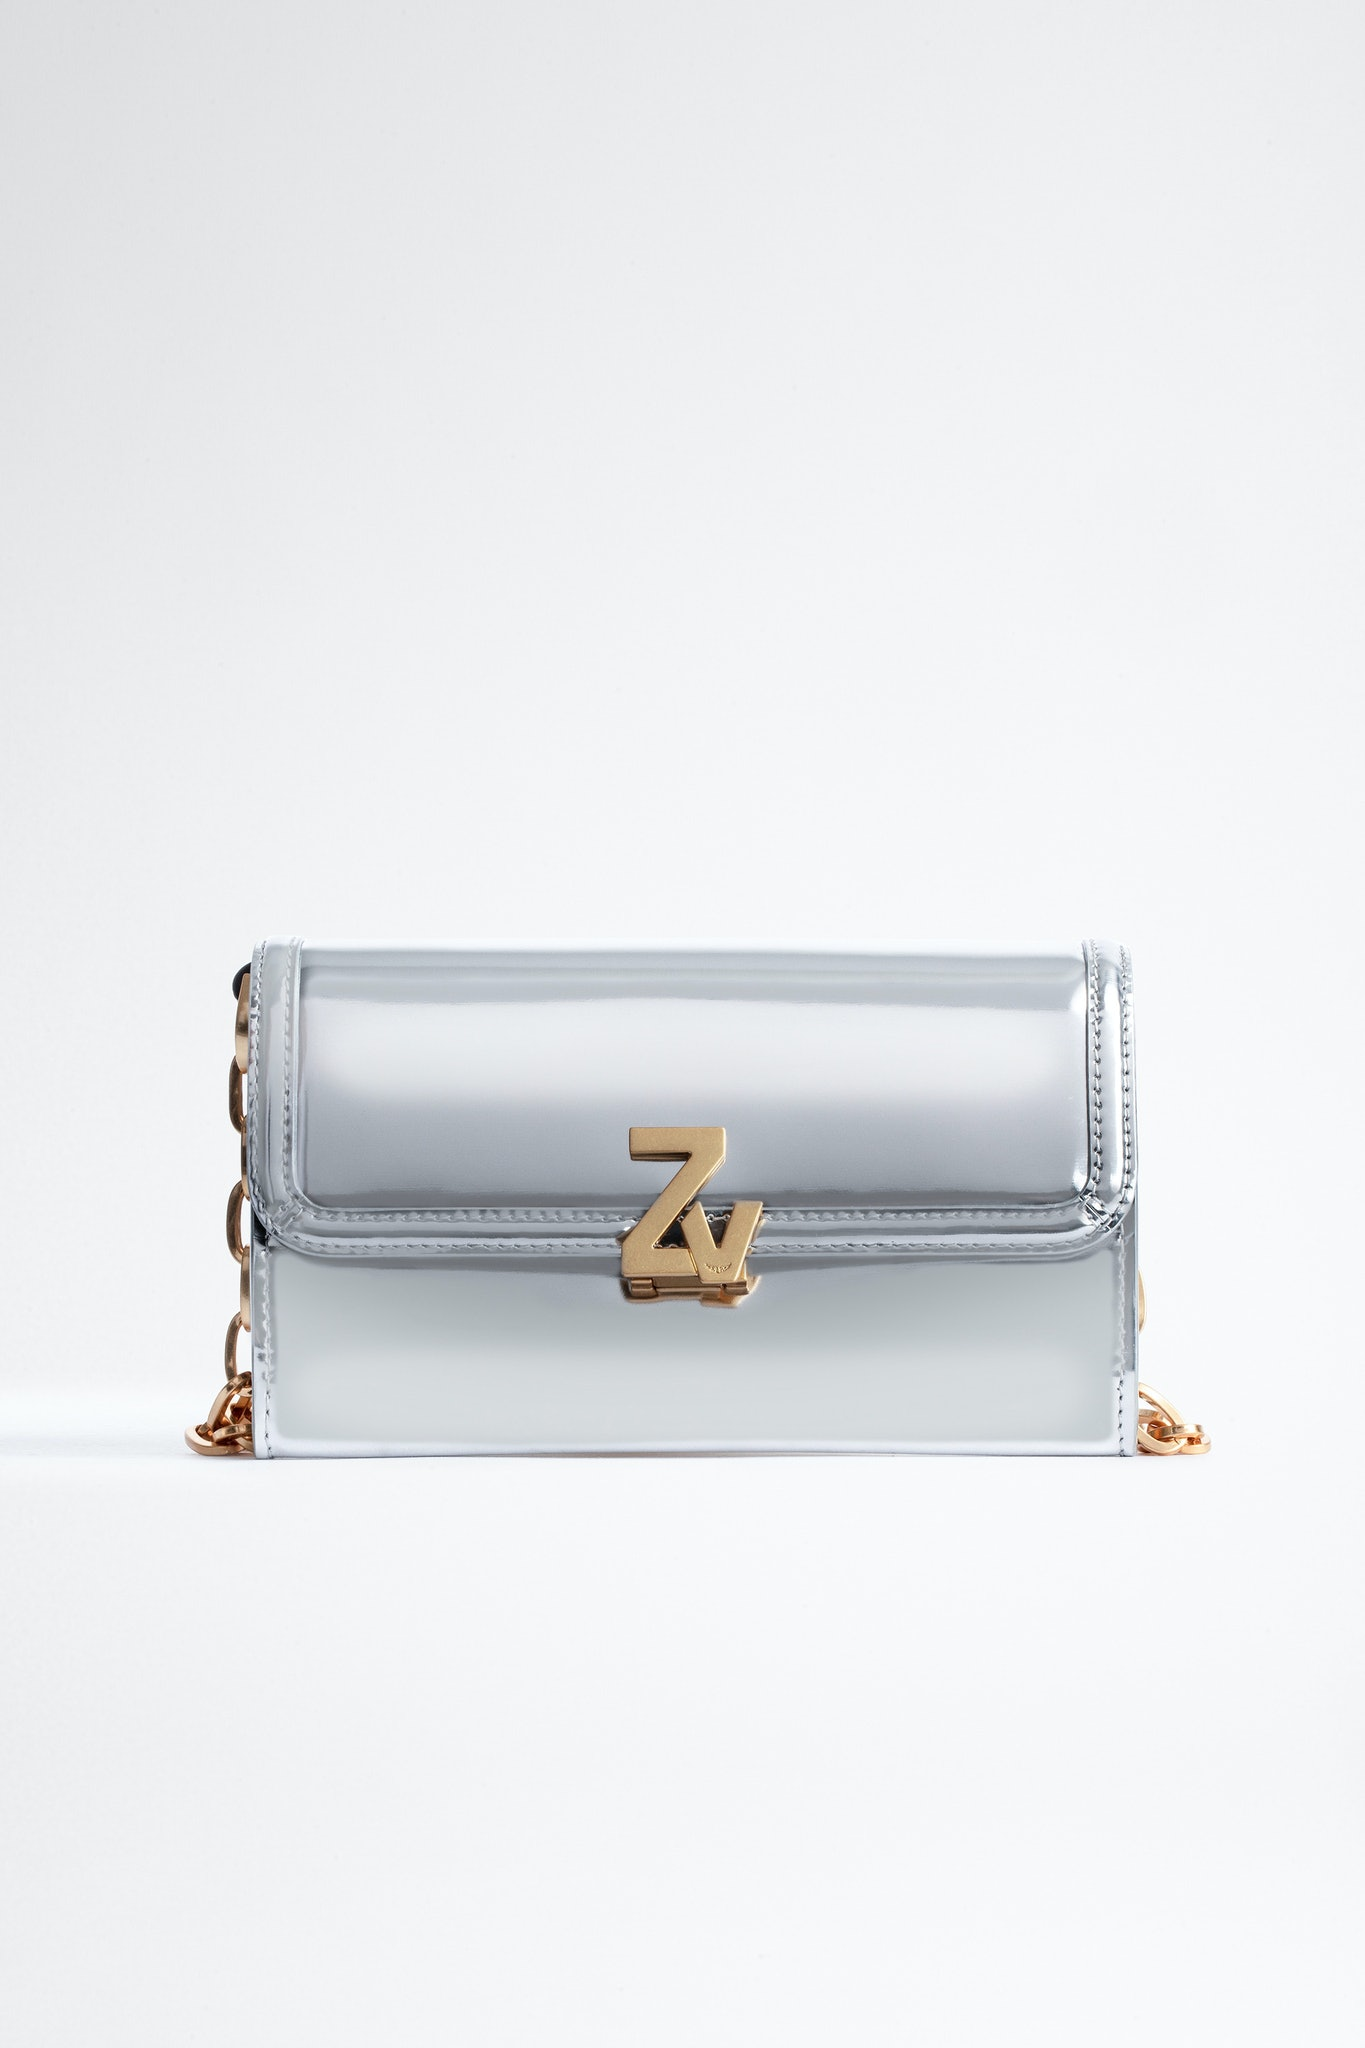 ZV Initiale Le Long Unchained Wallet